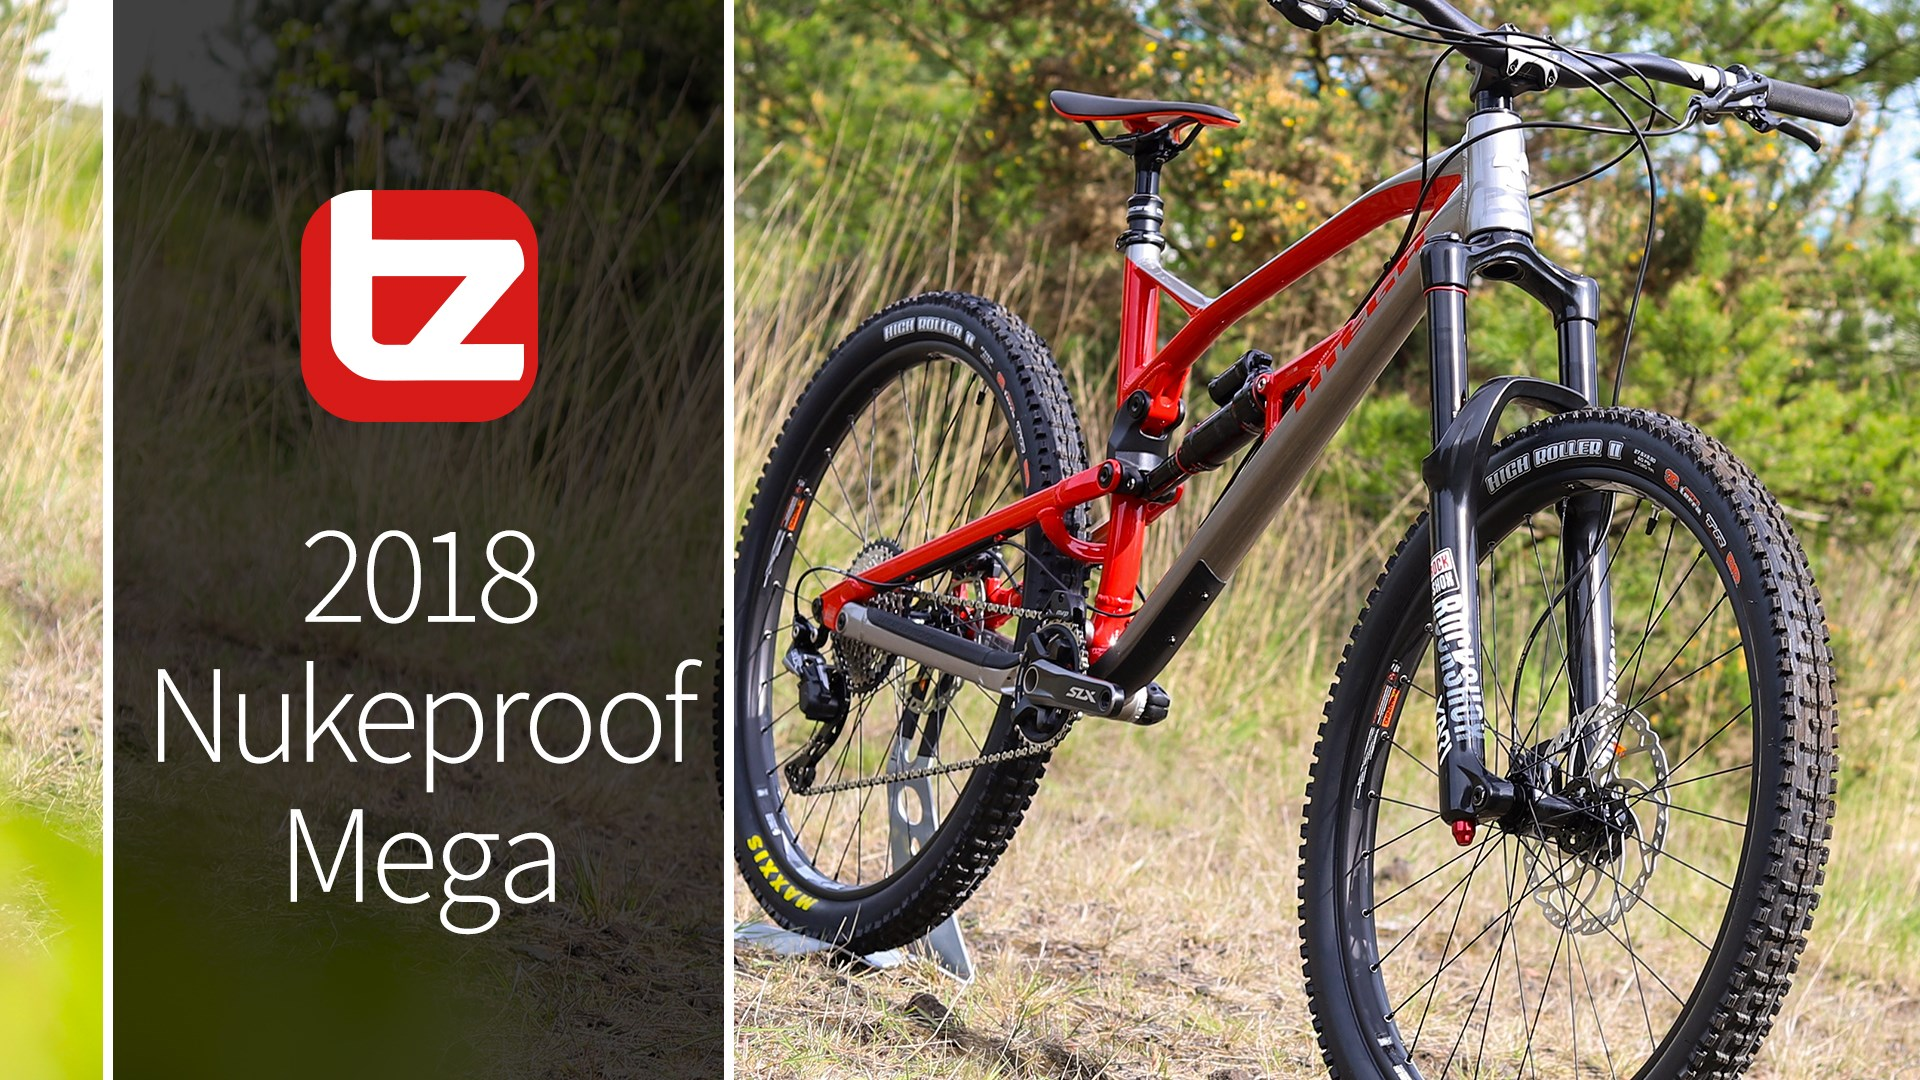 2018 Nukeproof Mega Range Review